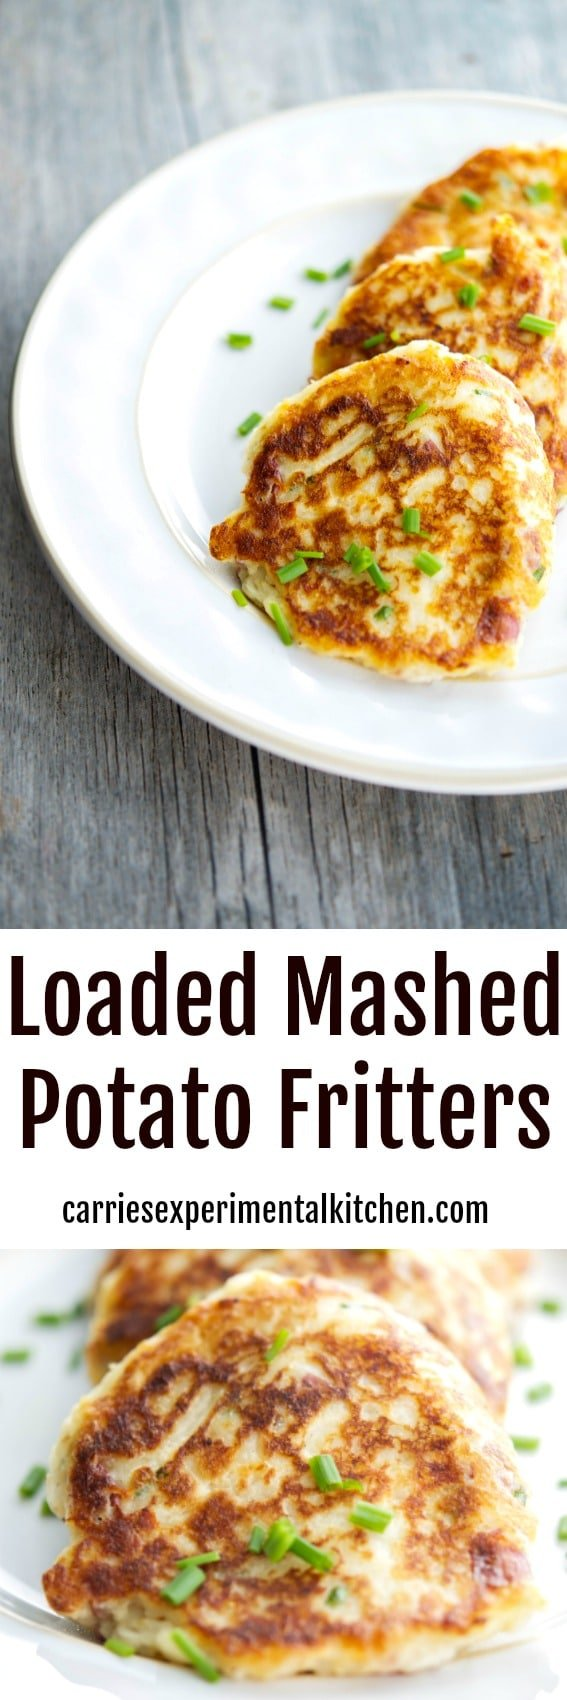 Turn leftover mashed potatoes into a new tasty side dish with all of your favorite toppings into one delicious potato fritter. #potato #sidedish #mashedpotatoes #leftovers